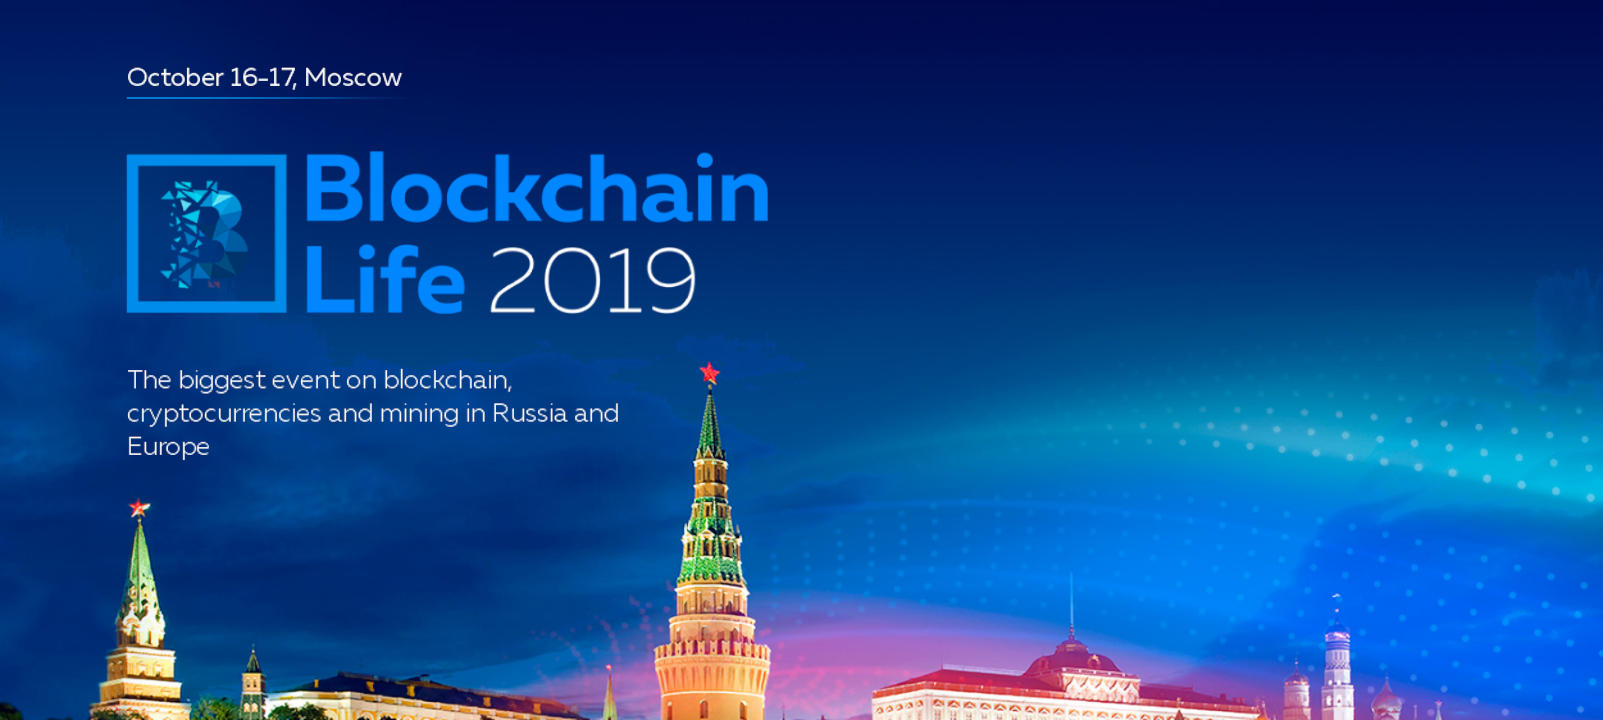 Blockchain Life 2019 Global Rusia